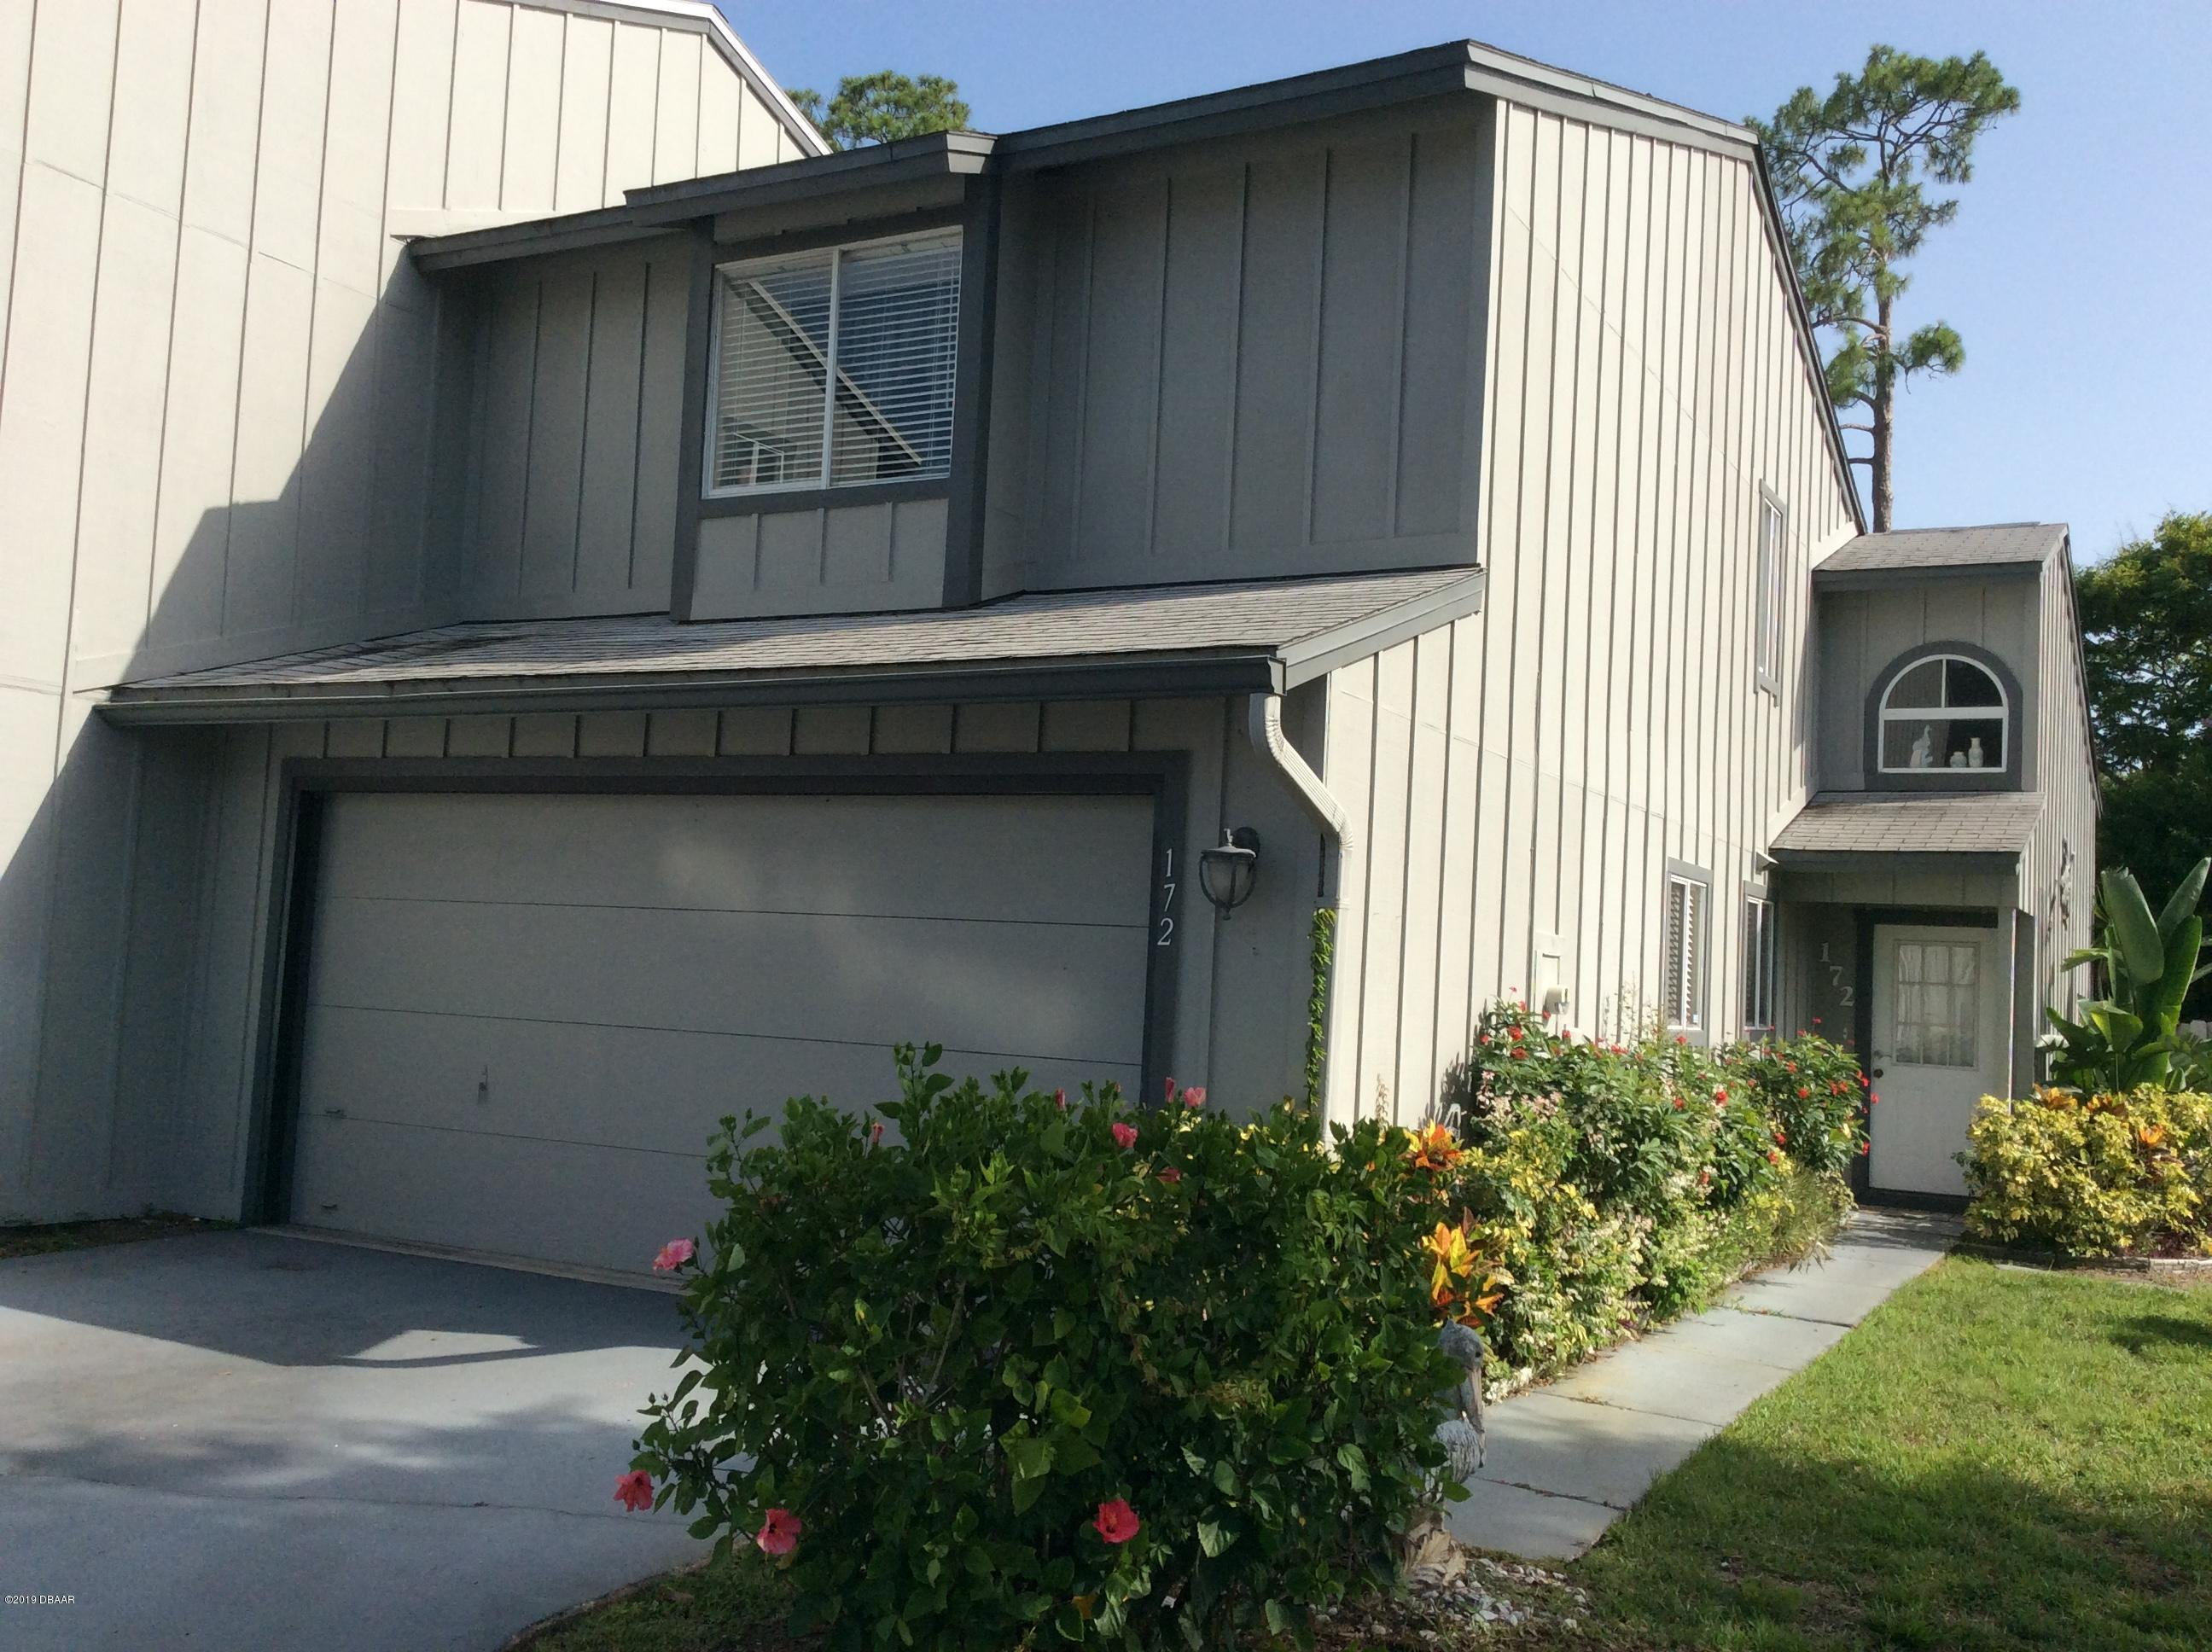 172 Cedarwood Village Daytona Beach - 1